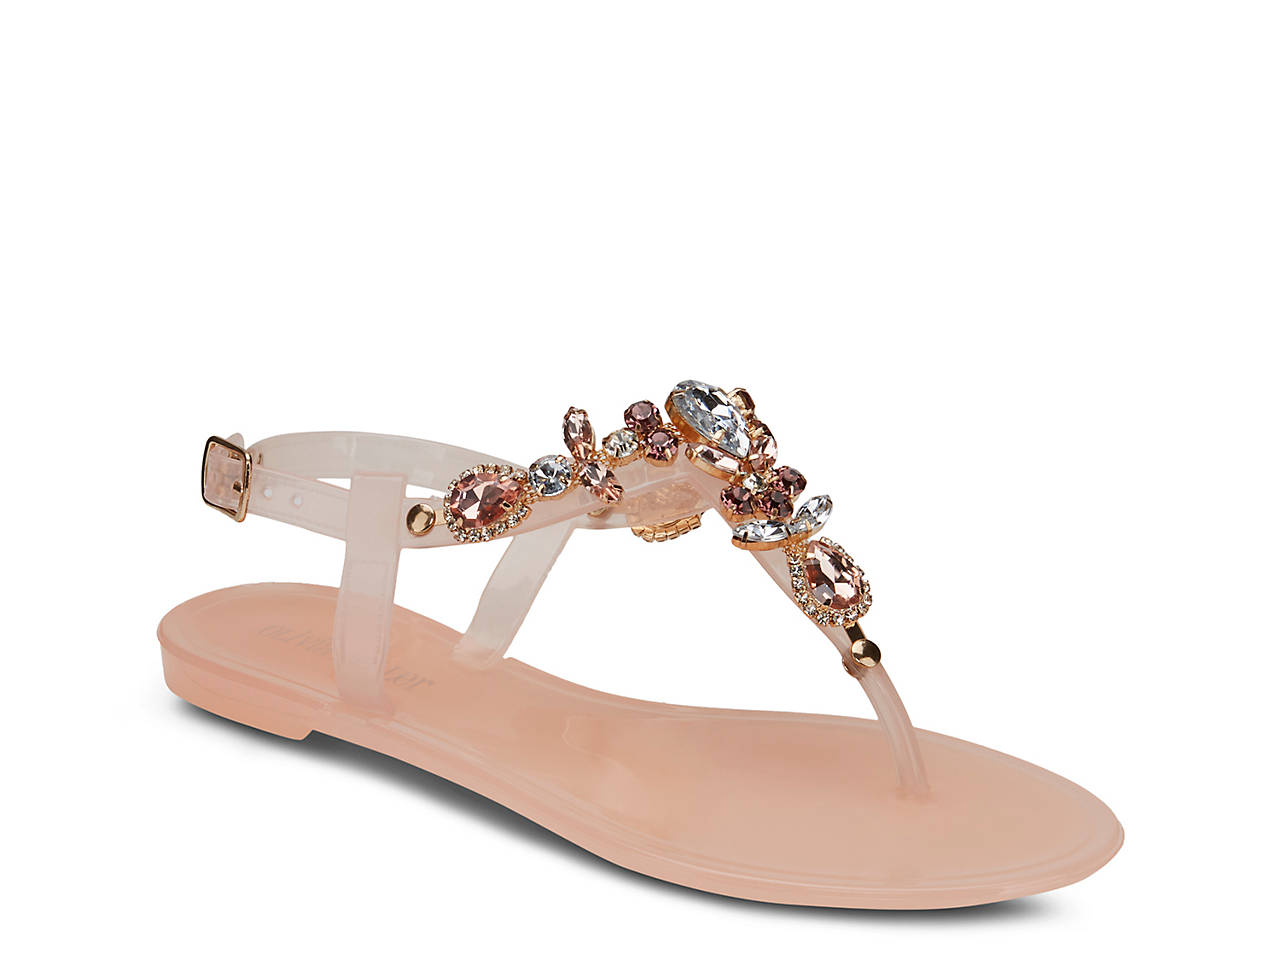 b589f8f892573 Olivia Miller Pop Rox Jelly Sandal Women s Shoes